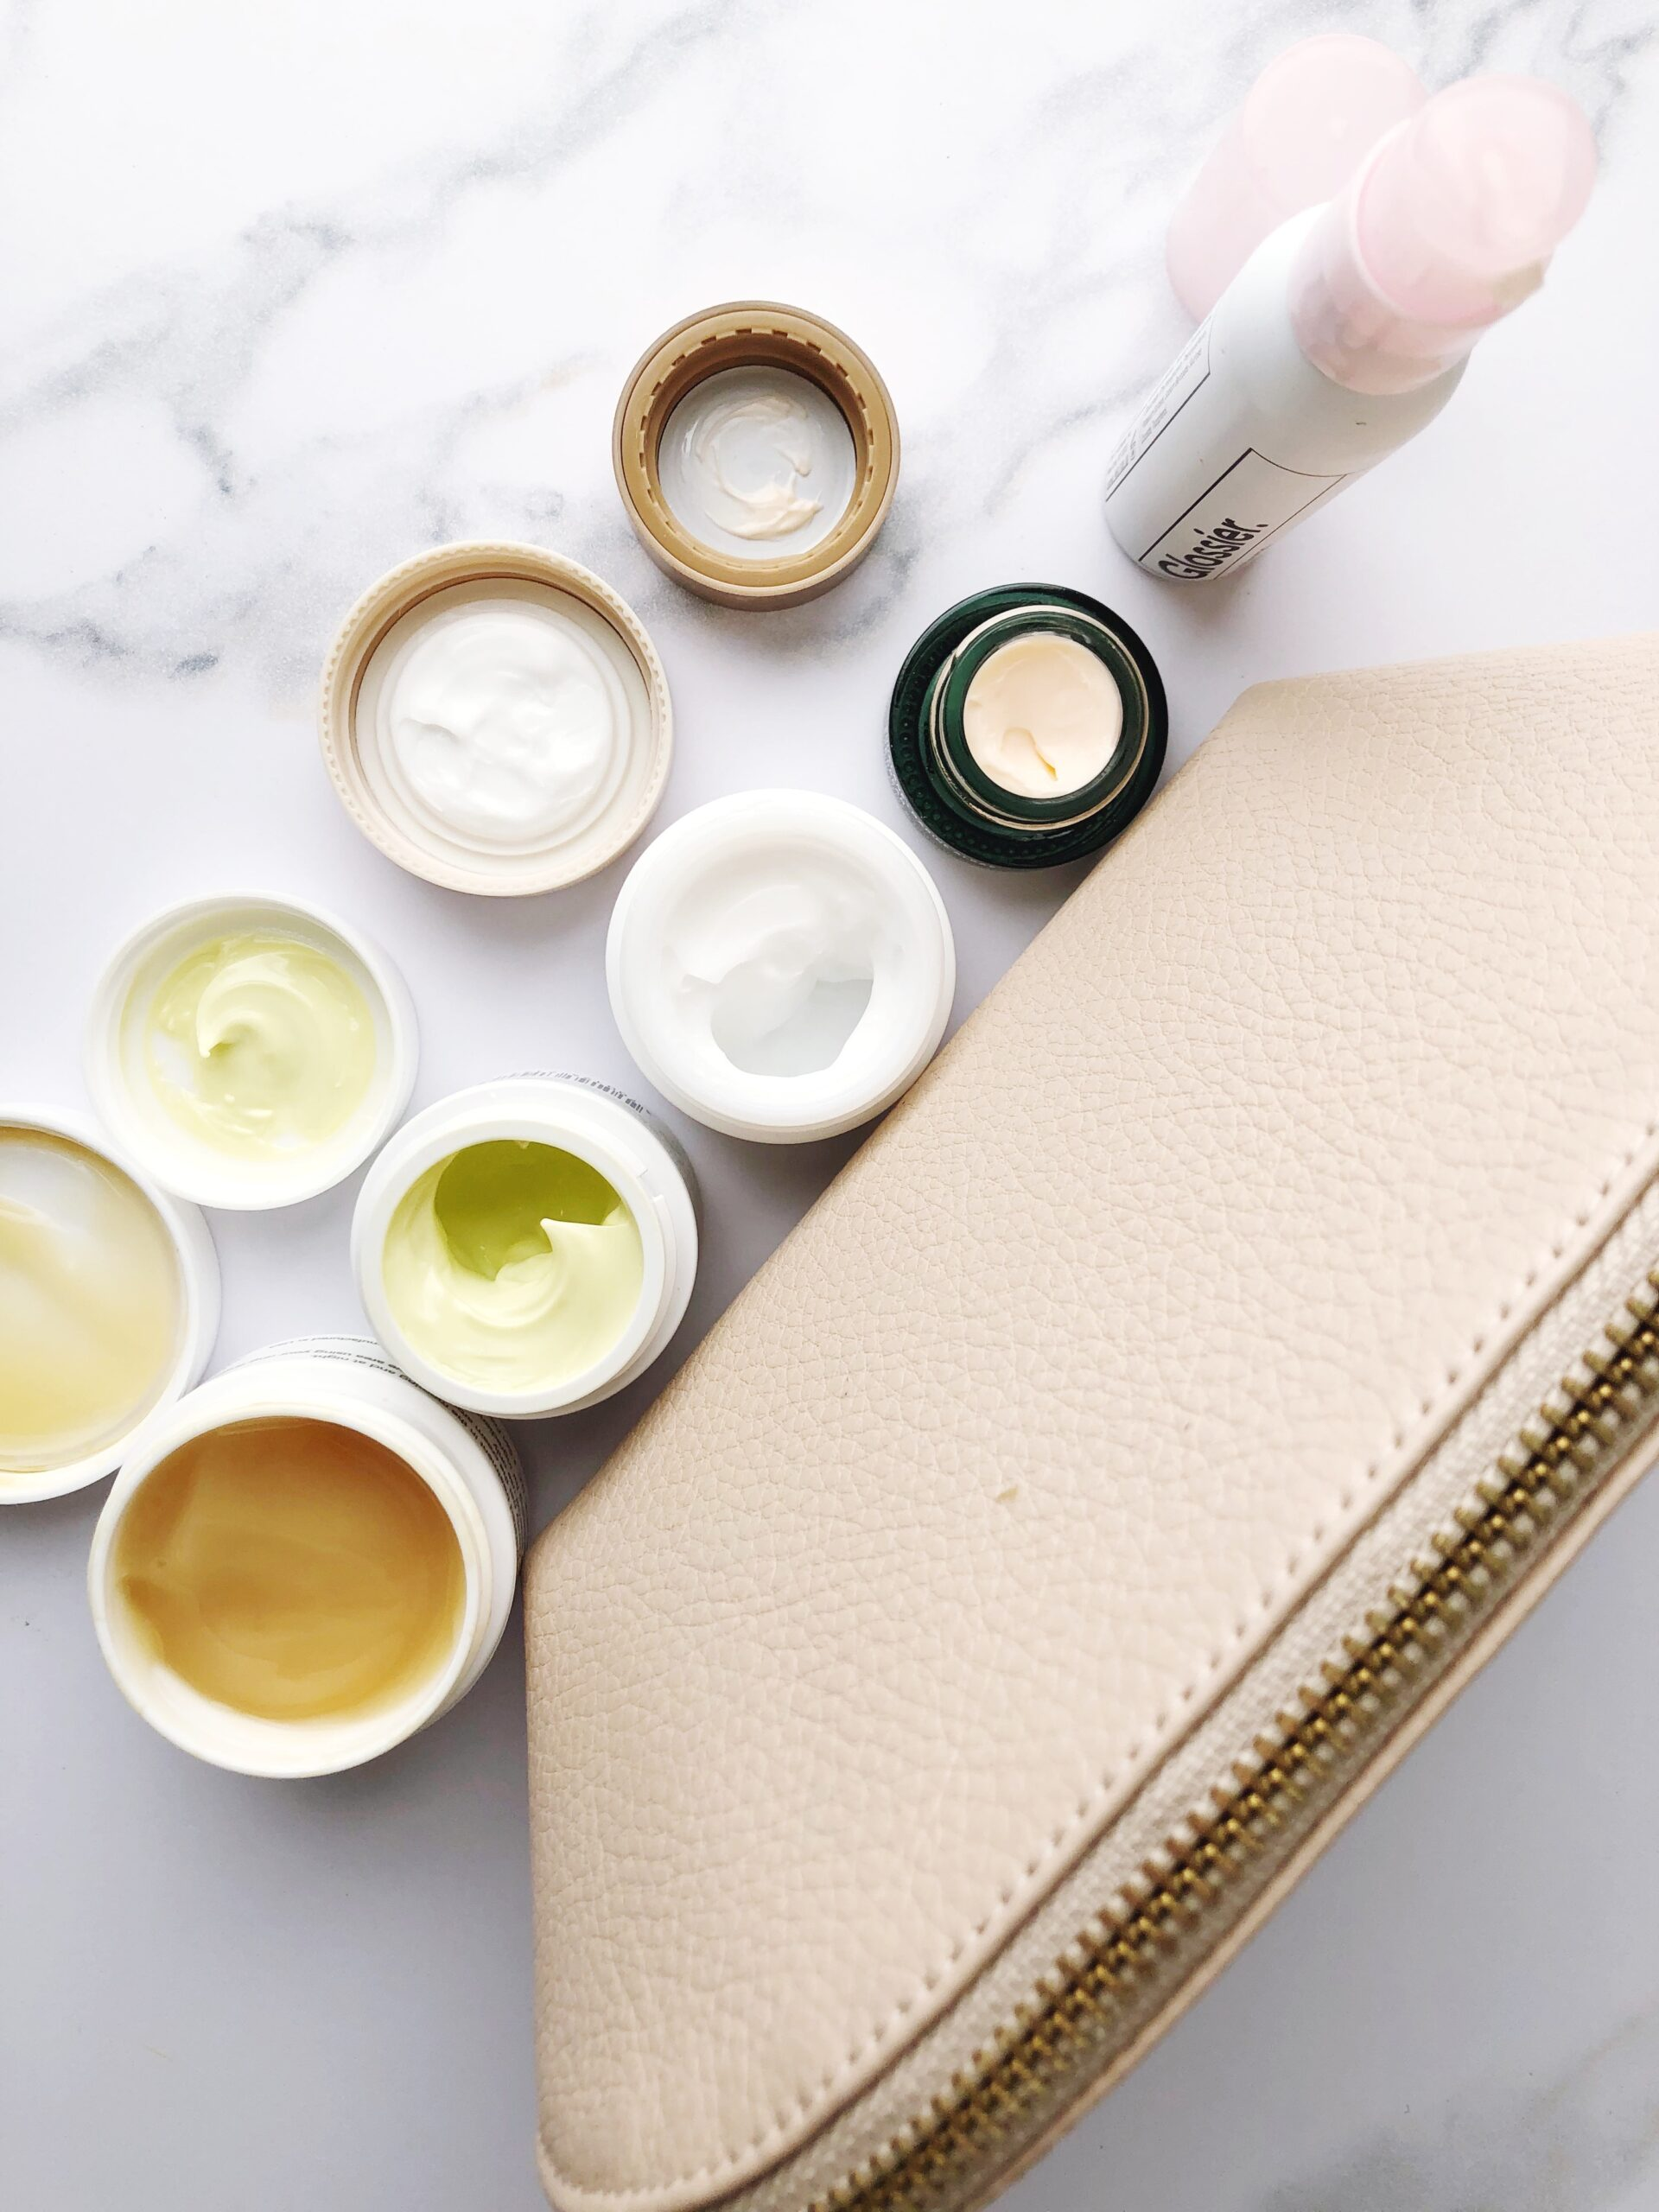 Eye Creams that hydrate, brighten and minimize fine lines